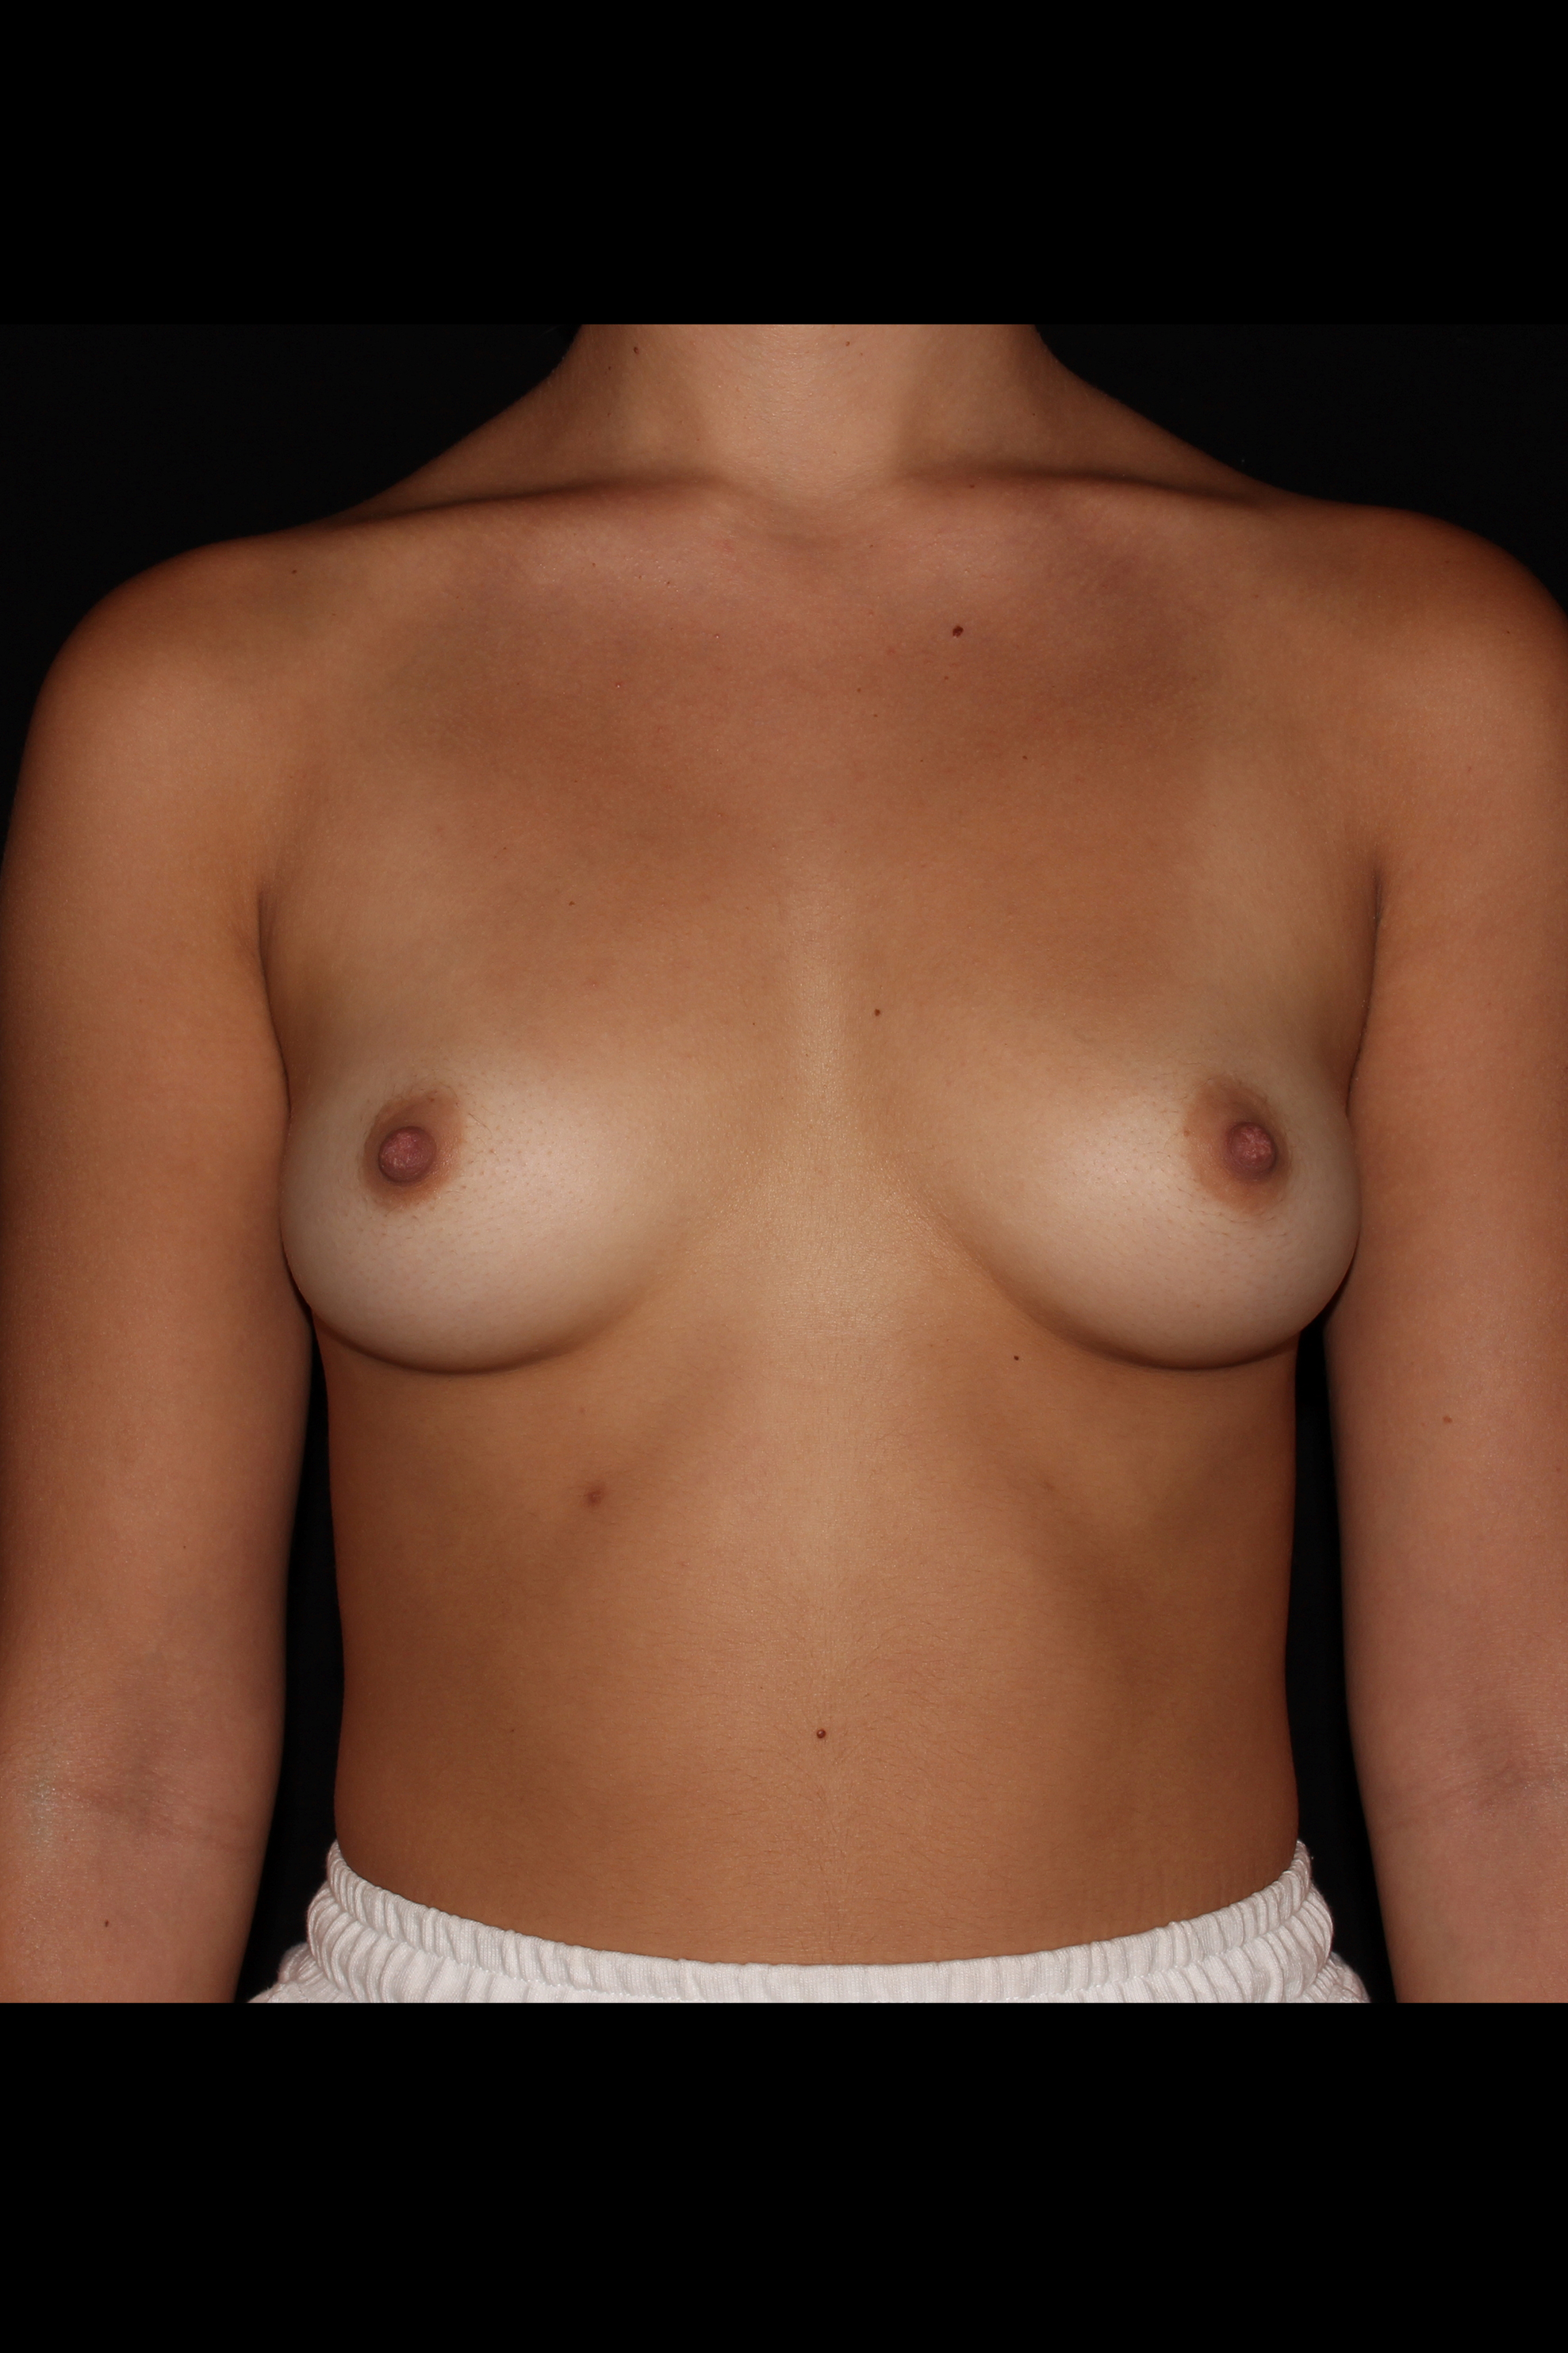 Before Breast Augmentation - 375cc moderate profile silicone implants